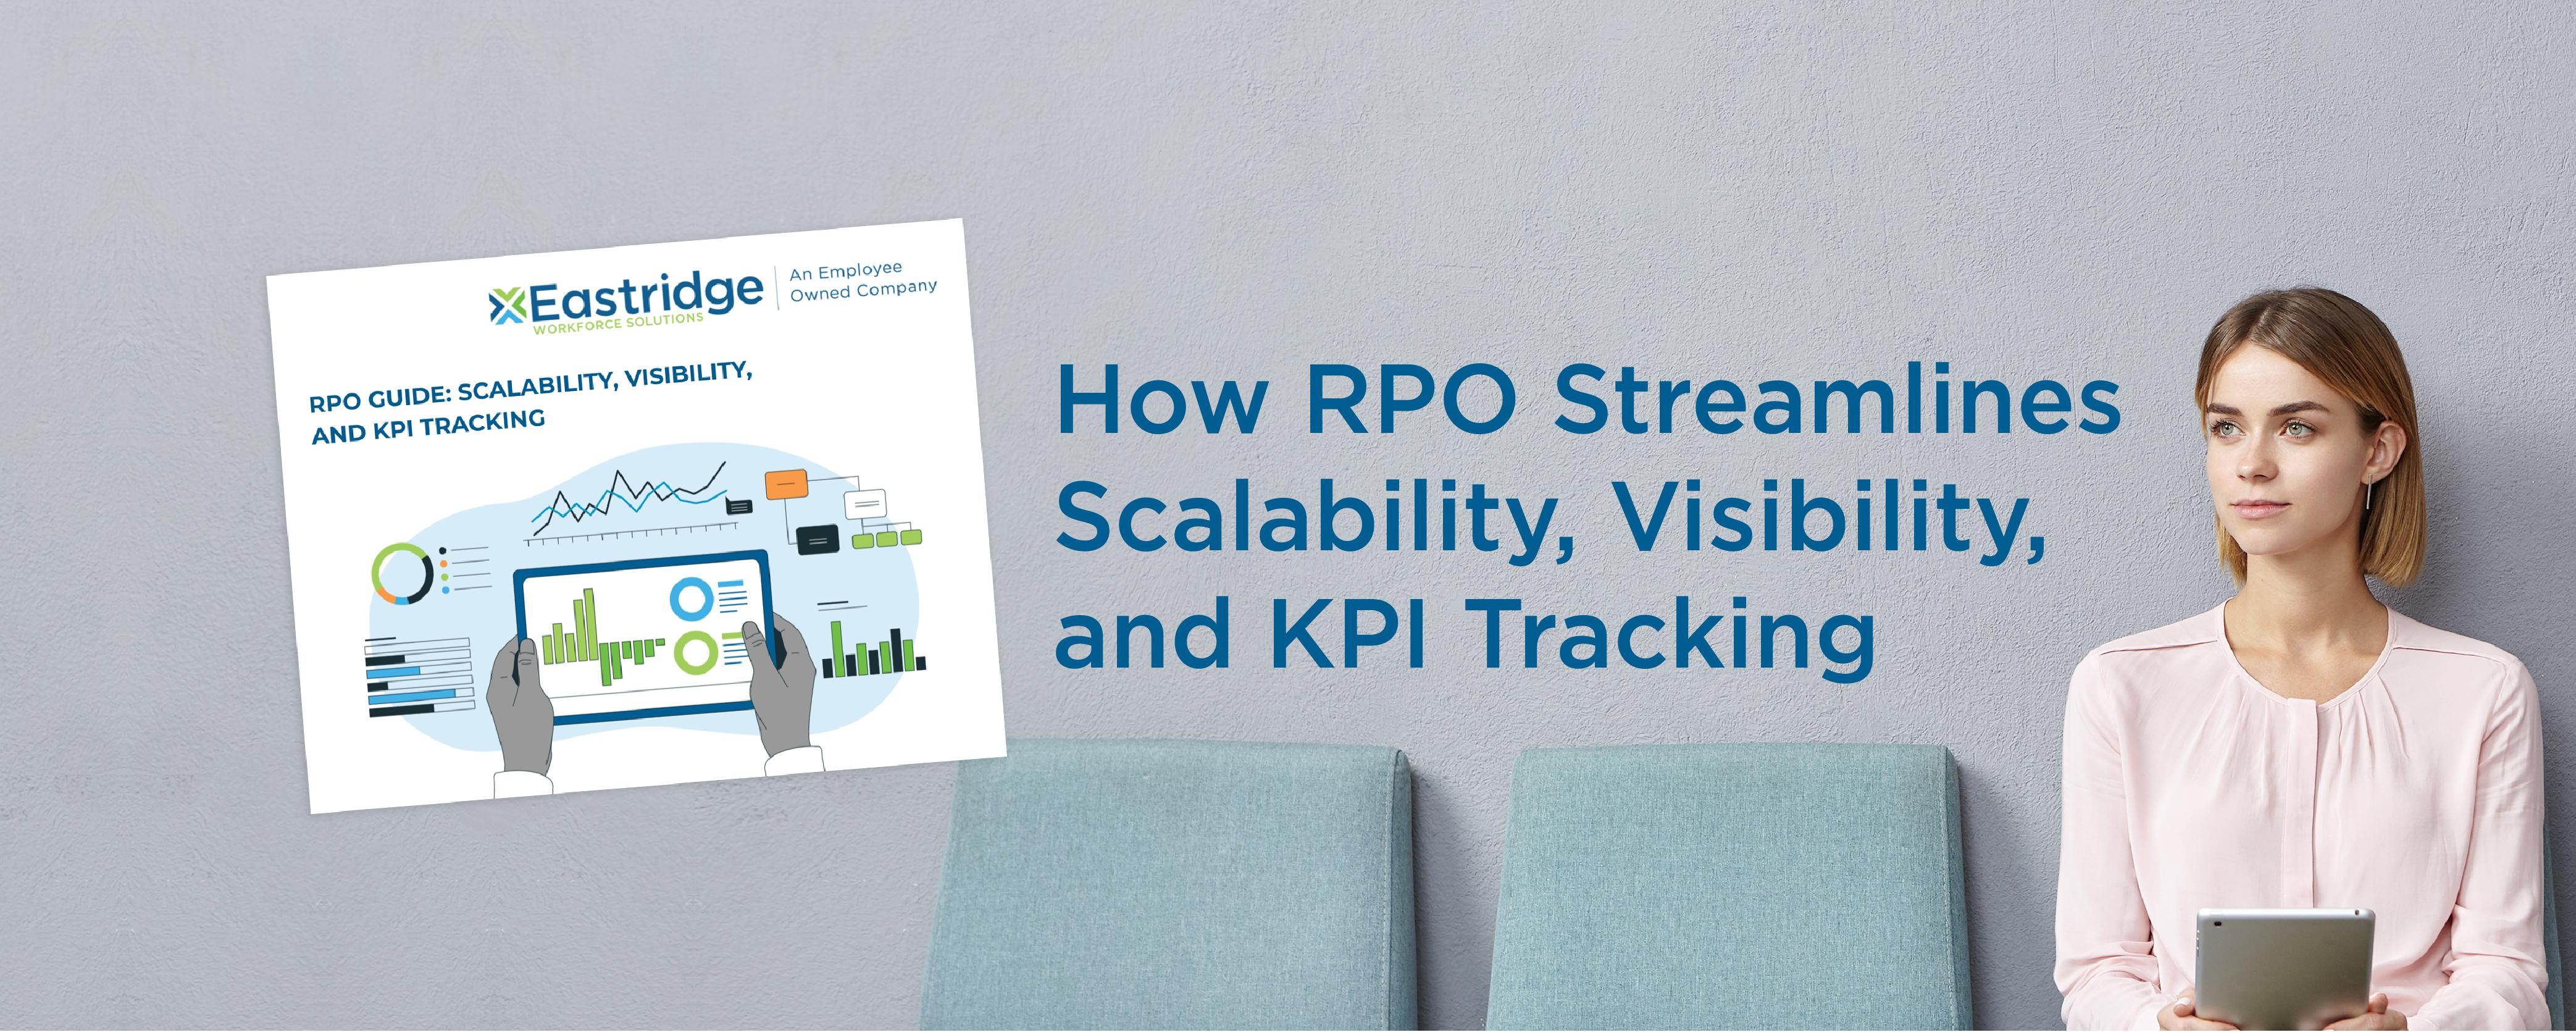 How RPO Streamlines Scalability, Visibility, and KPI Tracking